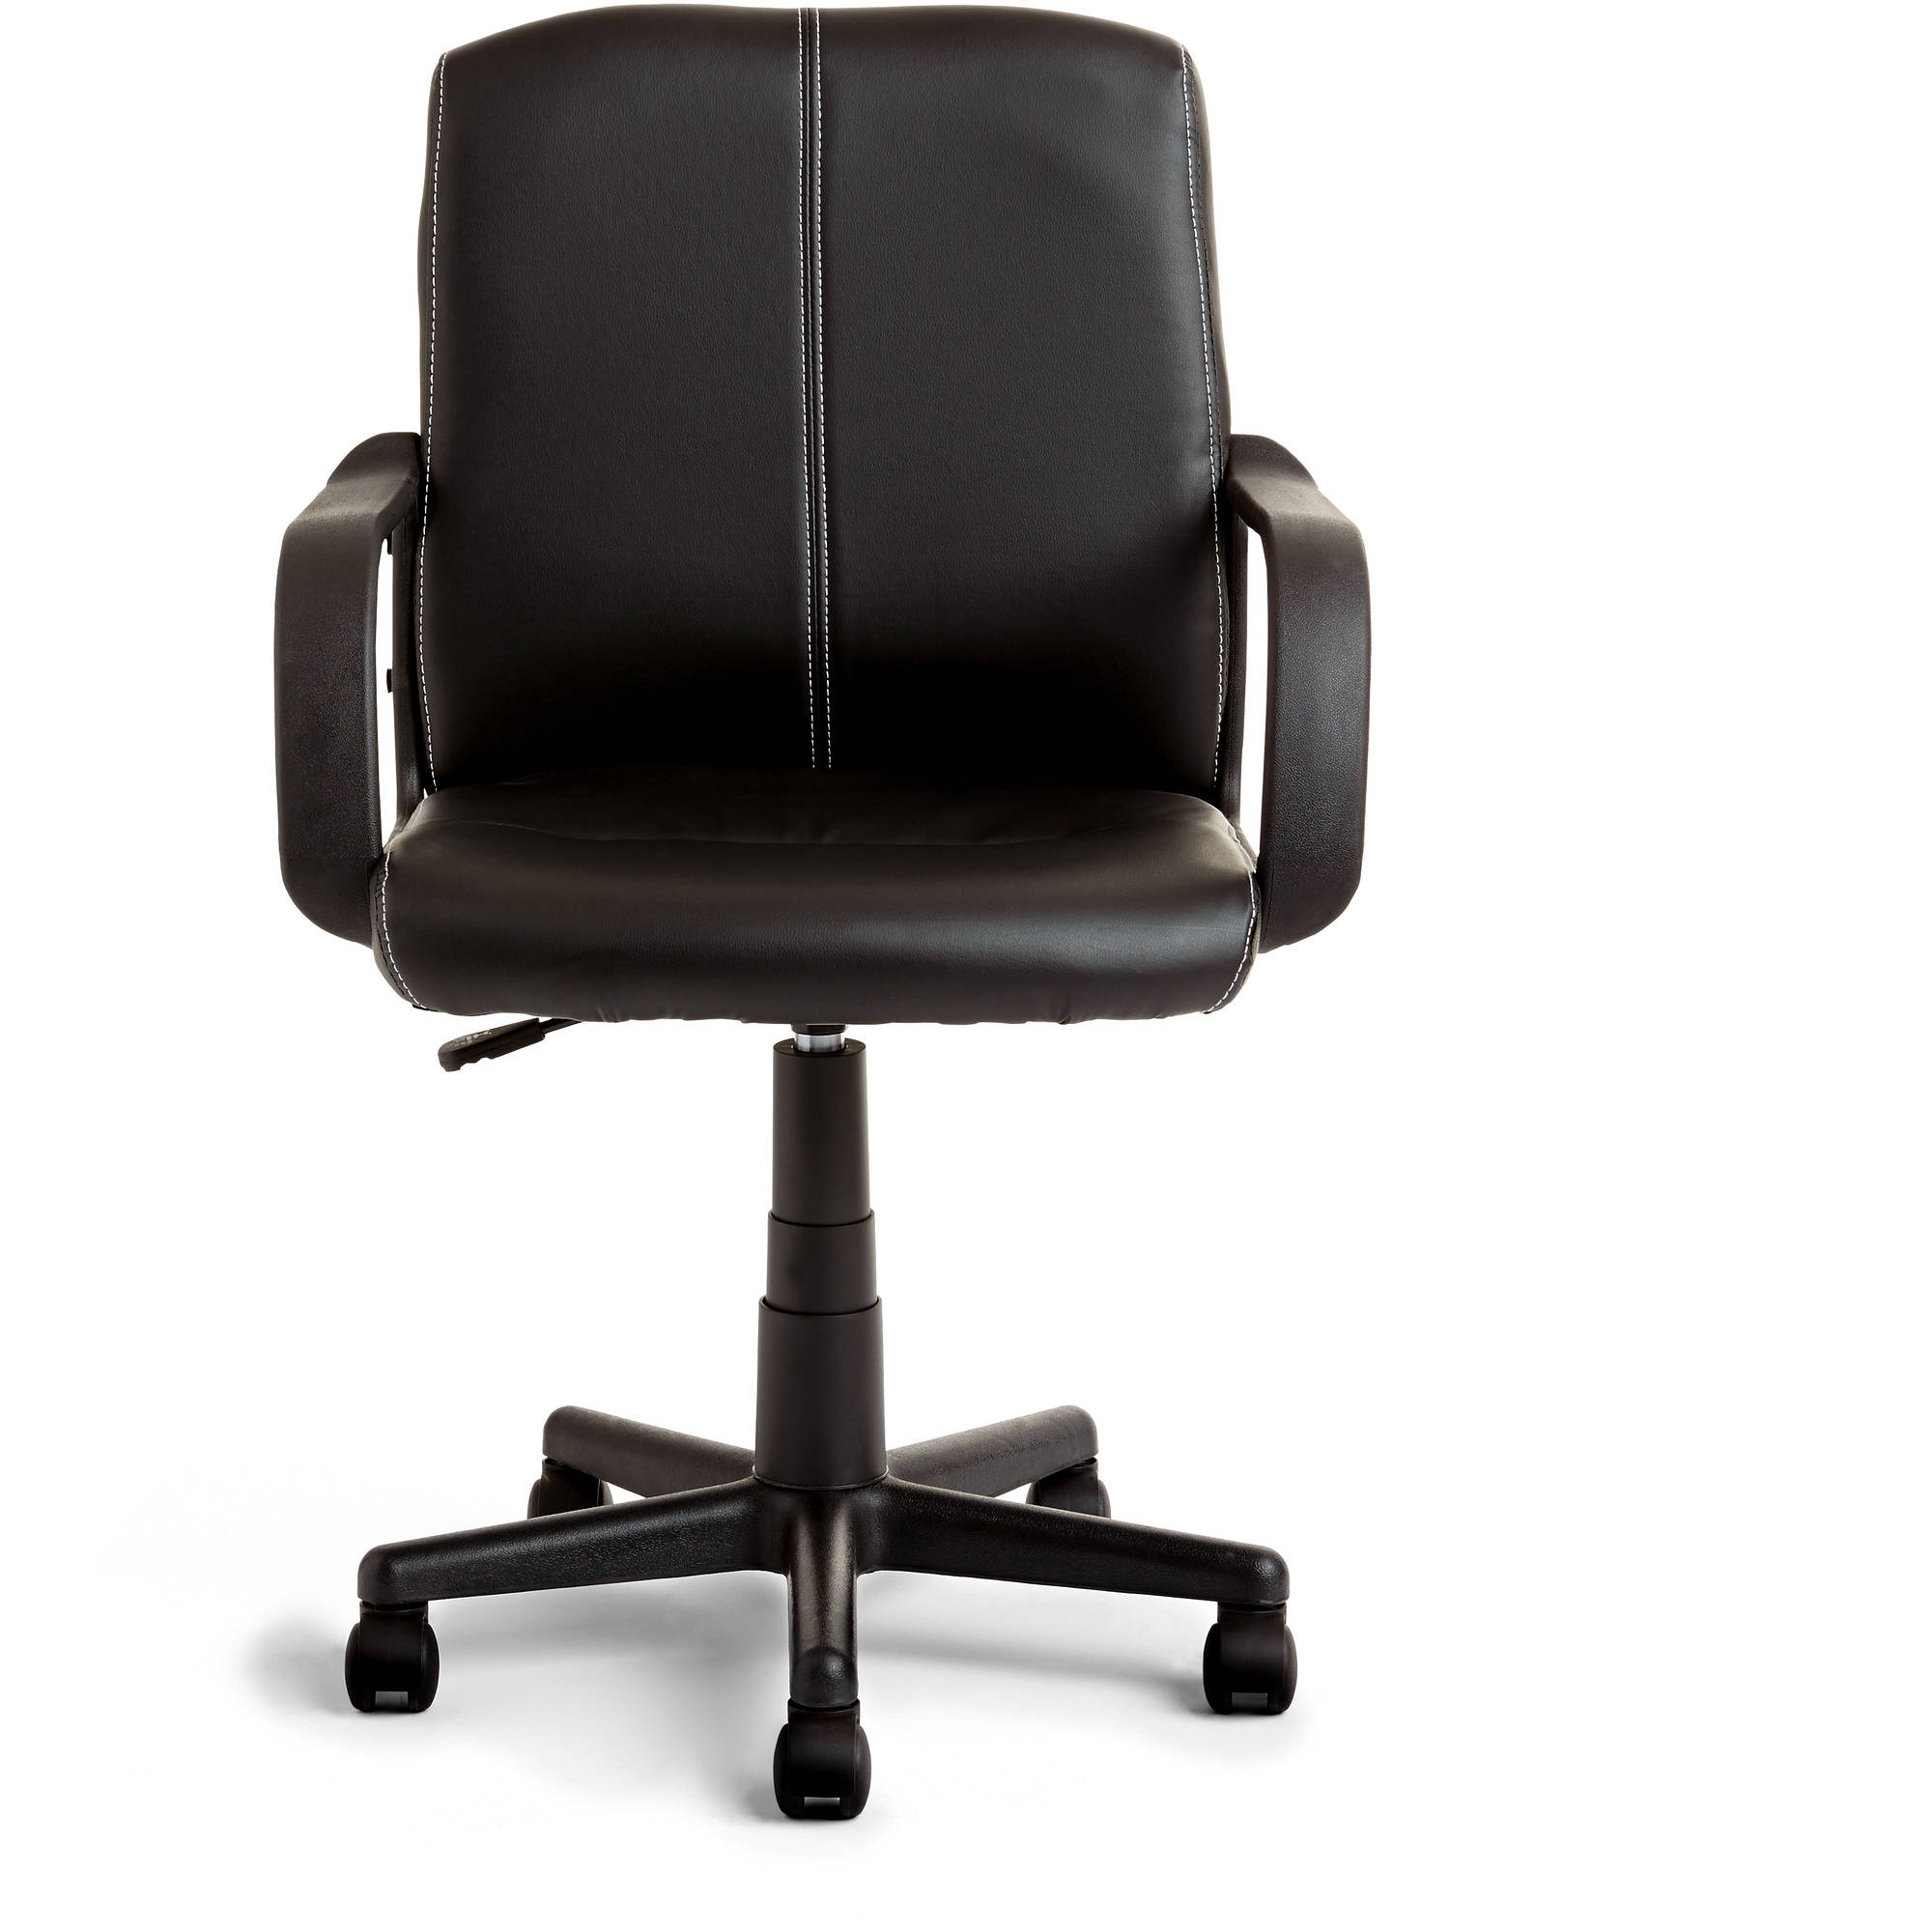 Mainstays Leather Mid-Back Rolling Swivel Office Chair, Multiple Colors